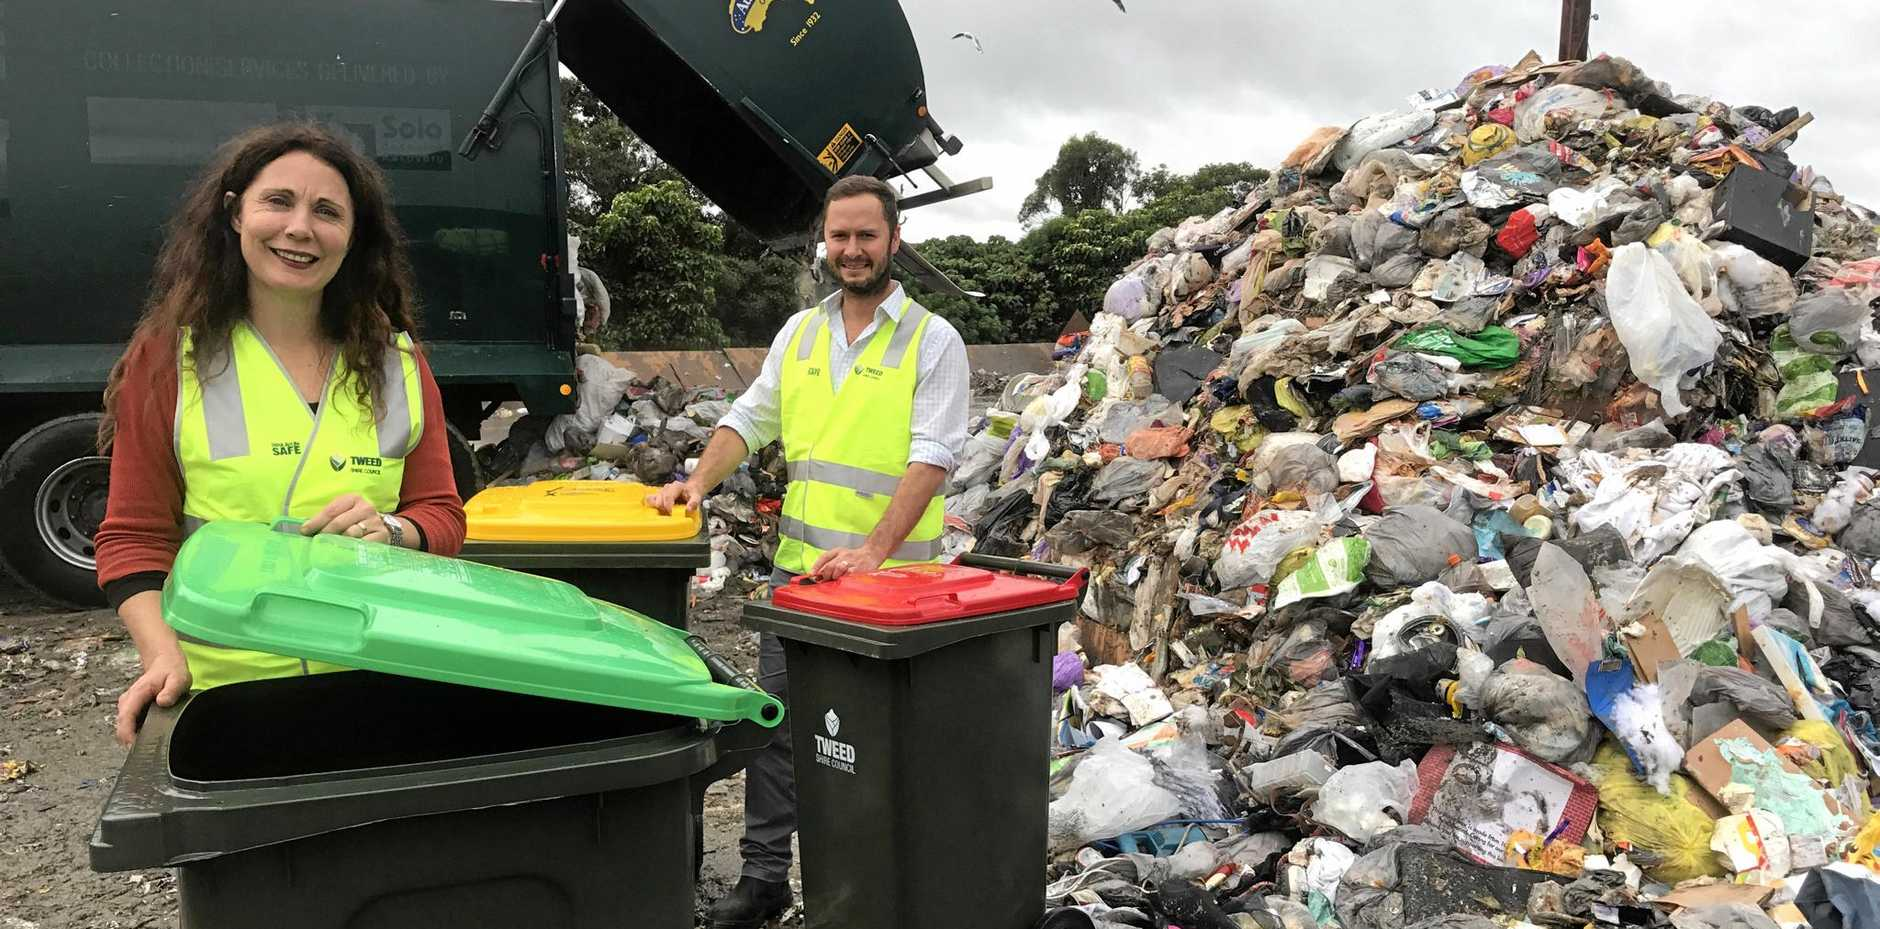 Tweed Shire Council's deputy mayor Chris Cherry and waste operations officer Wes Knight are hoping the new three bin waste system will reduce the mounds of waste in the shire.